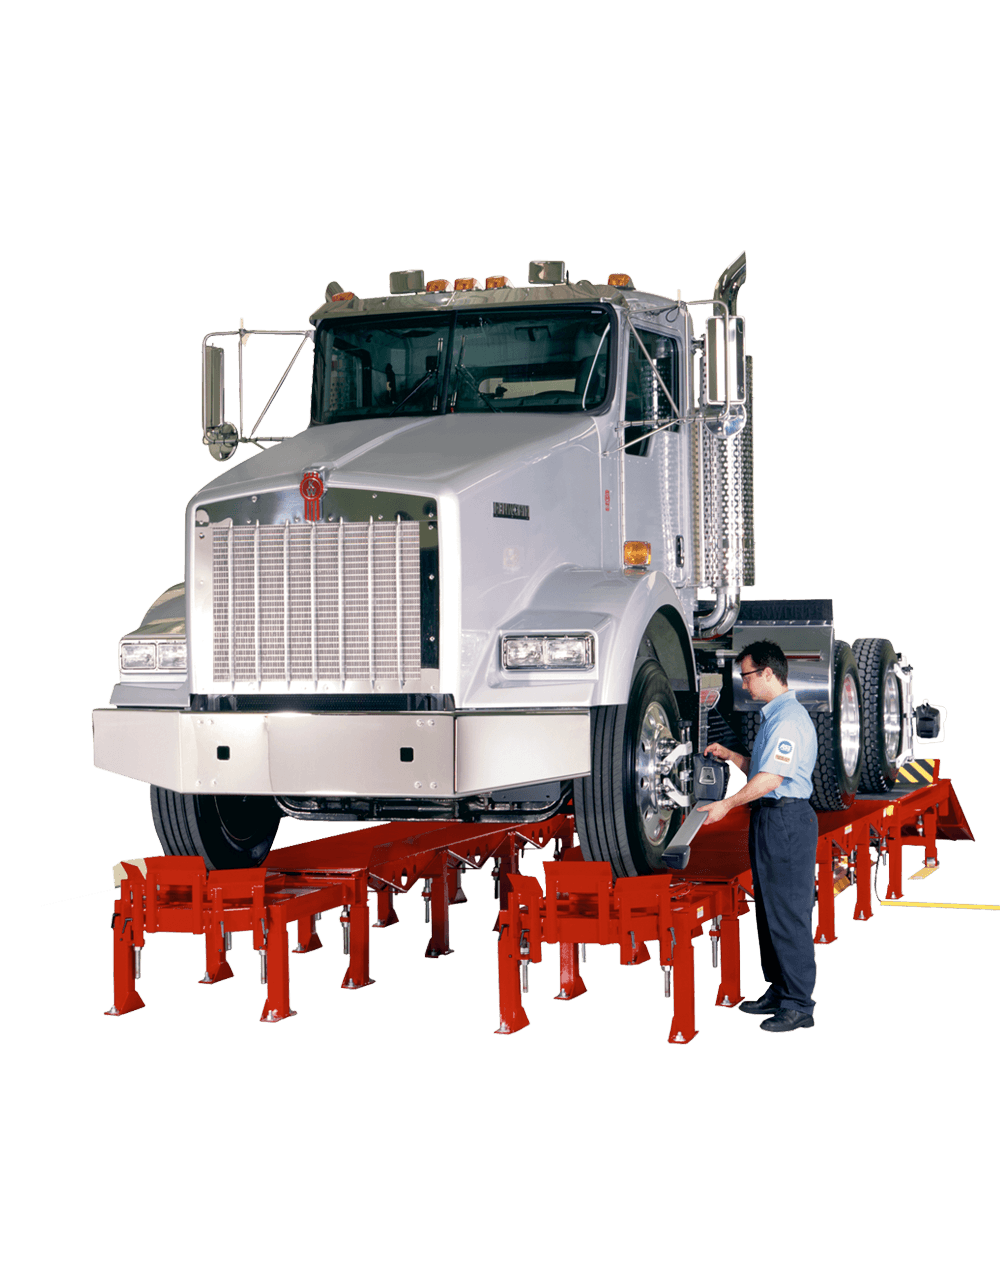 Heavy-duty power rack with commercial truck